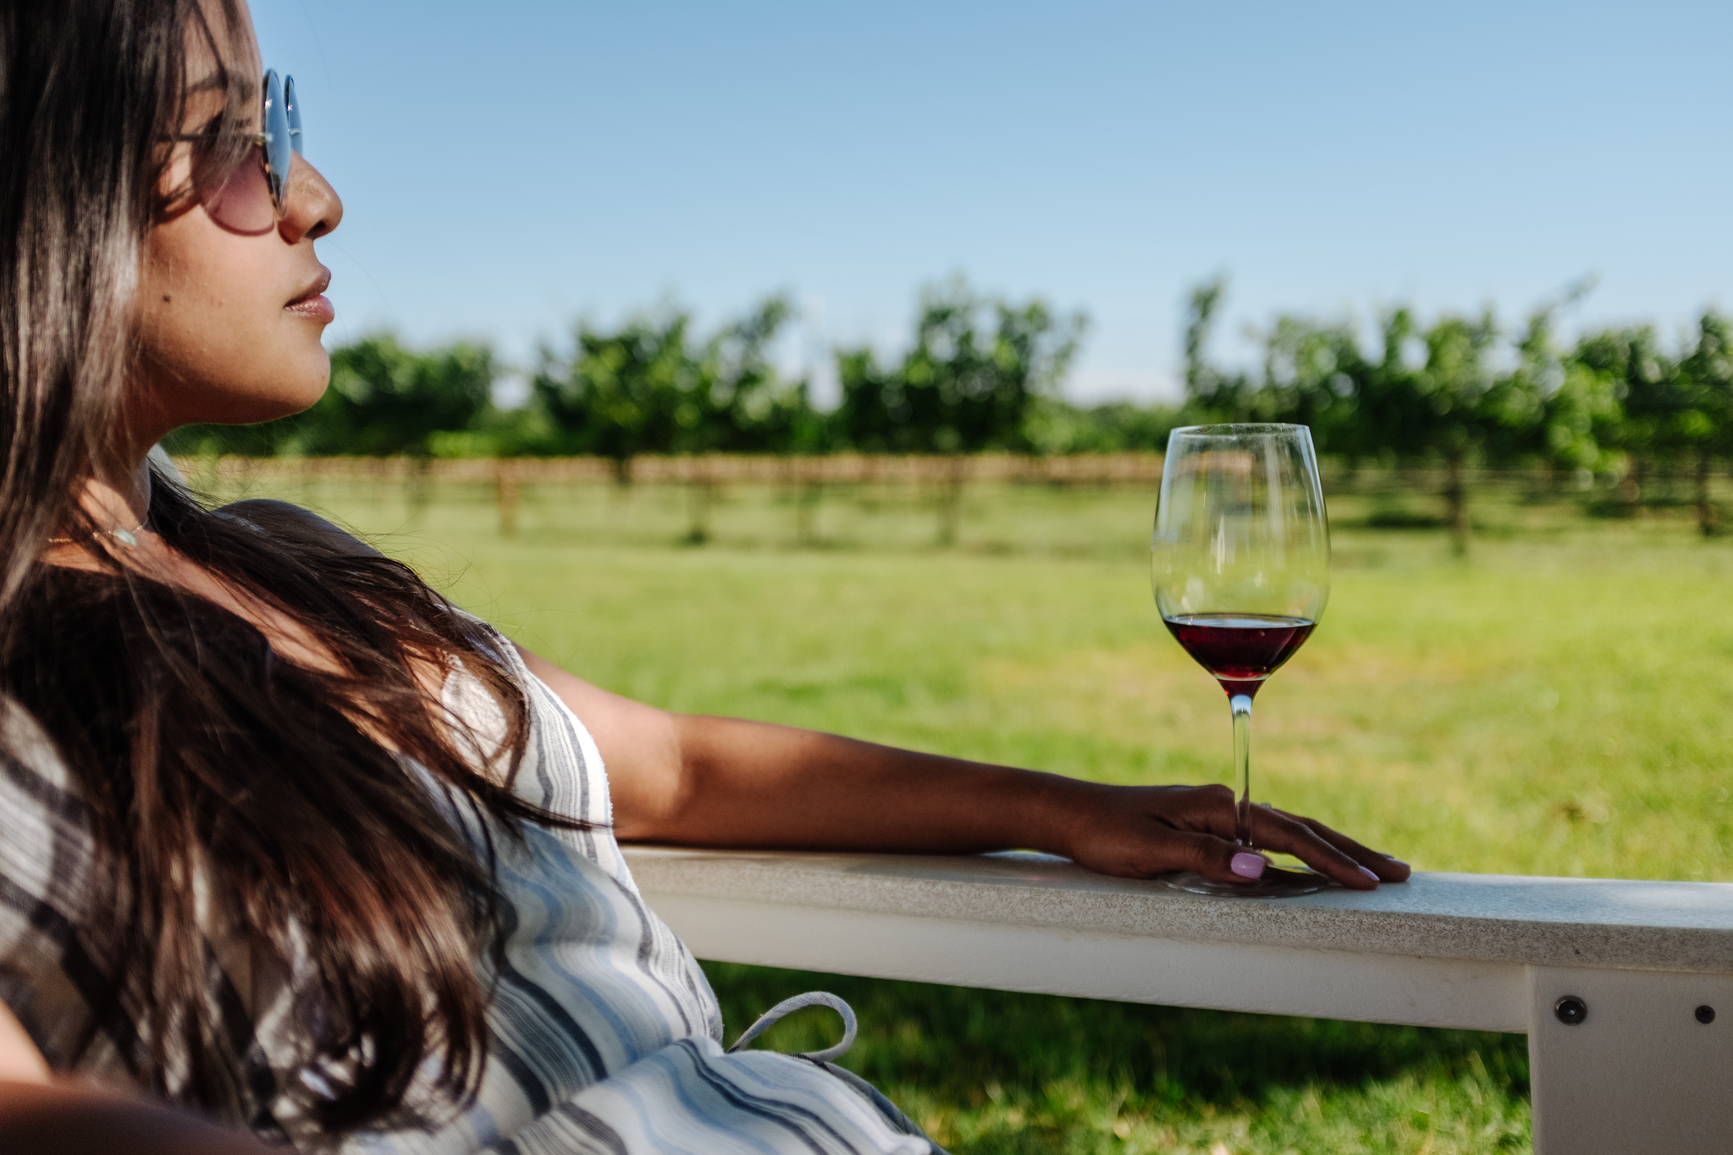 A young hispanic woman exploring the wineries and nature of Fredericksburg, TX.